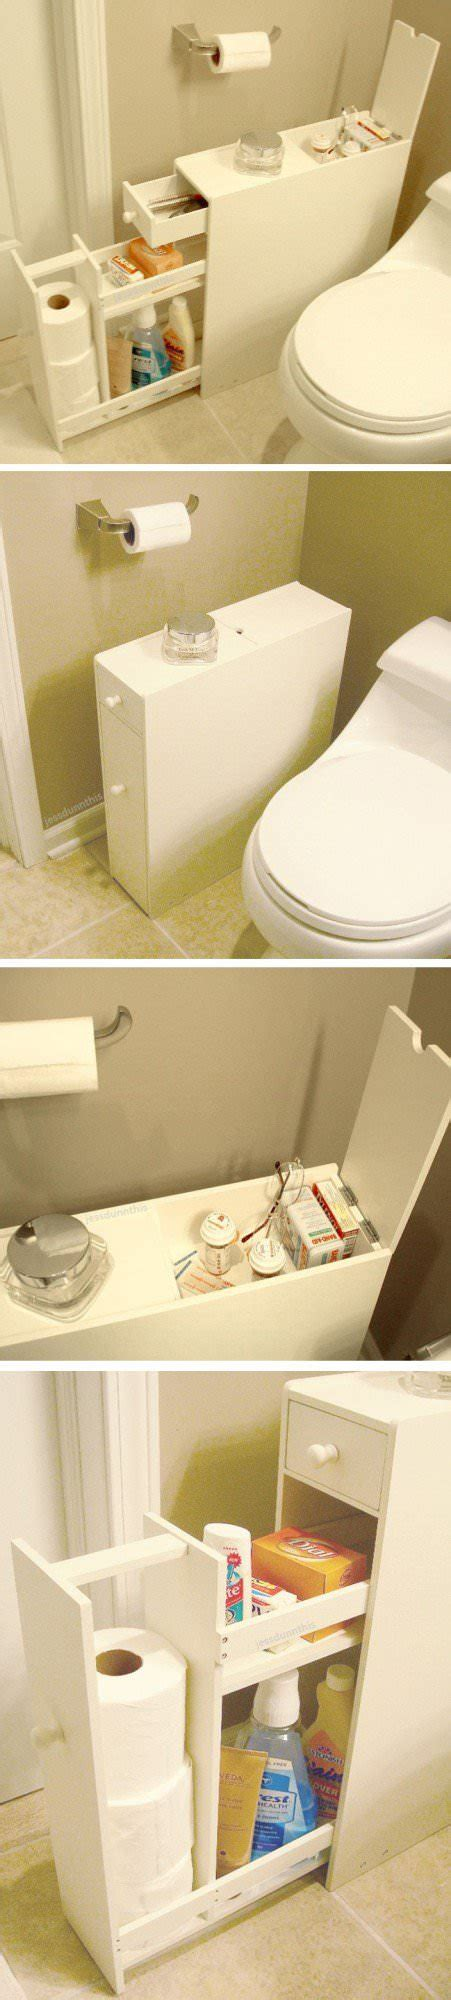 tiny bathroom storage ideas top 25 the best diy small bathroom storage ideas that will fascinate you veryhom